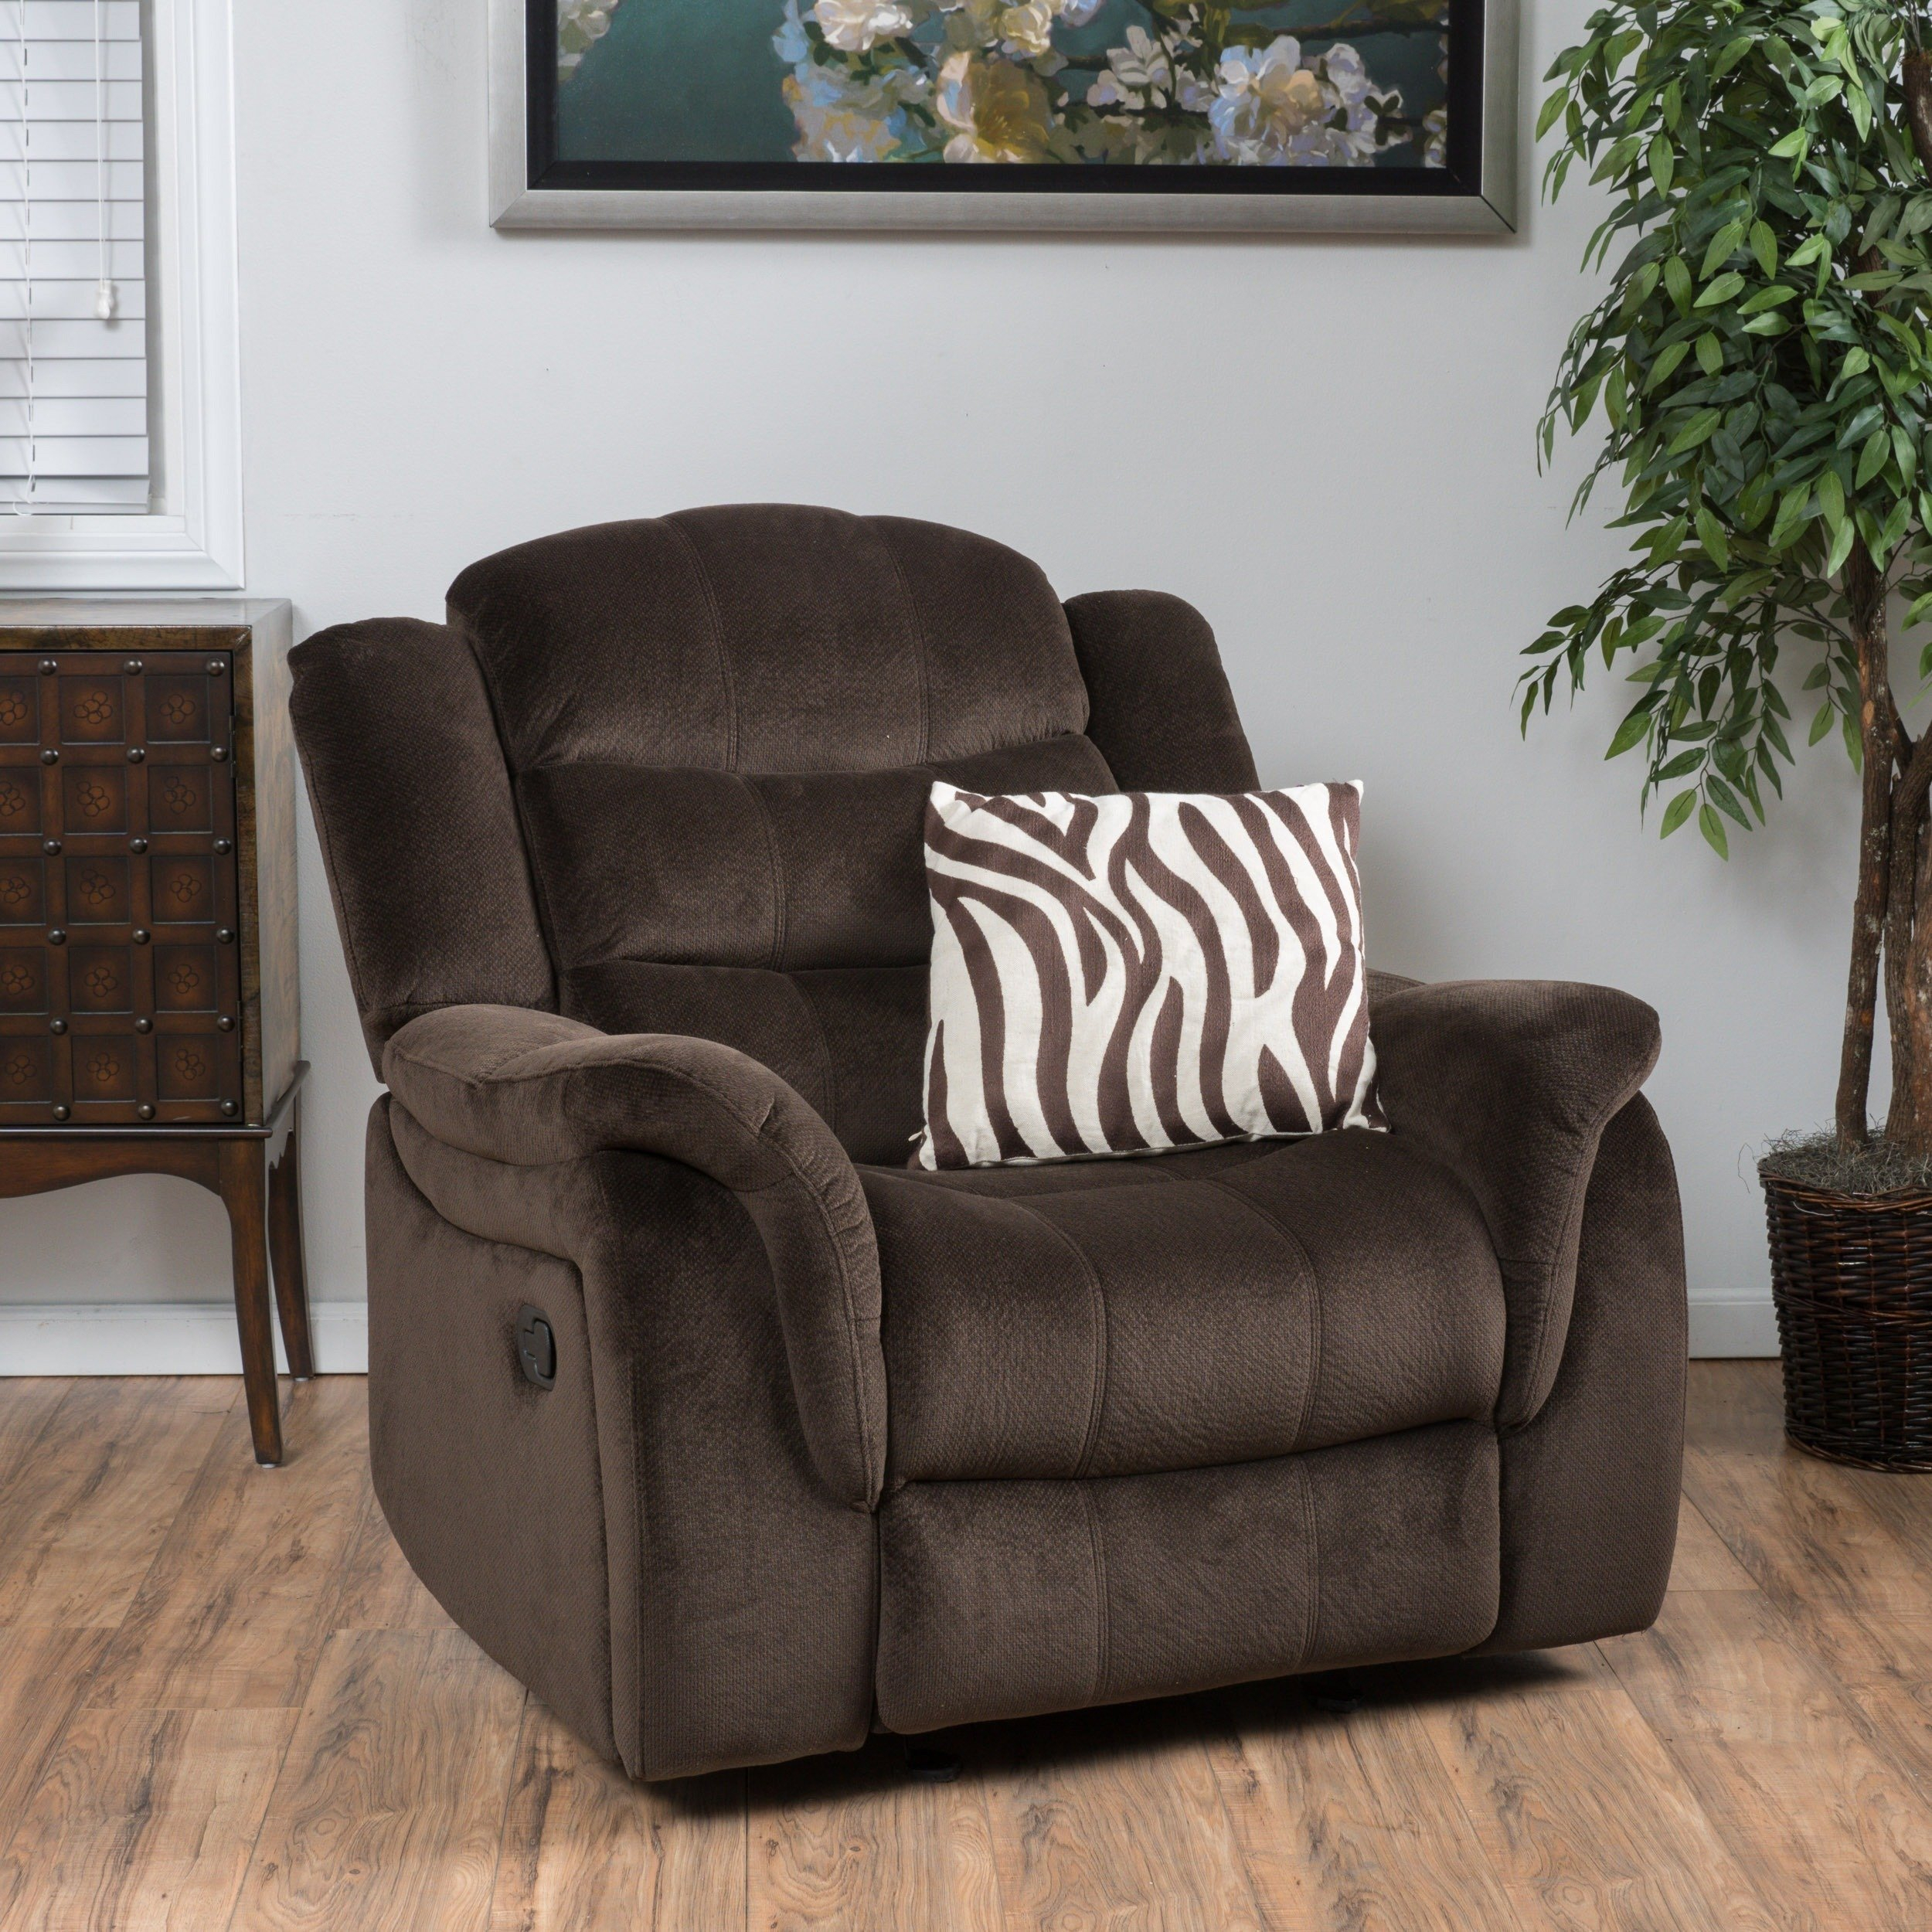 Buy Brown Christopher Knight Home Living Room Chairs Online At Throughout Dale Iii Polyurethane Swivel Glider Recliners (View 22 of 25)